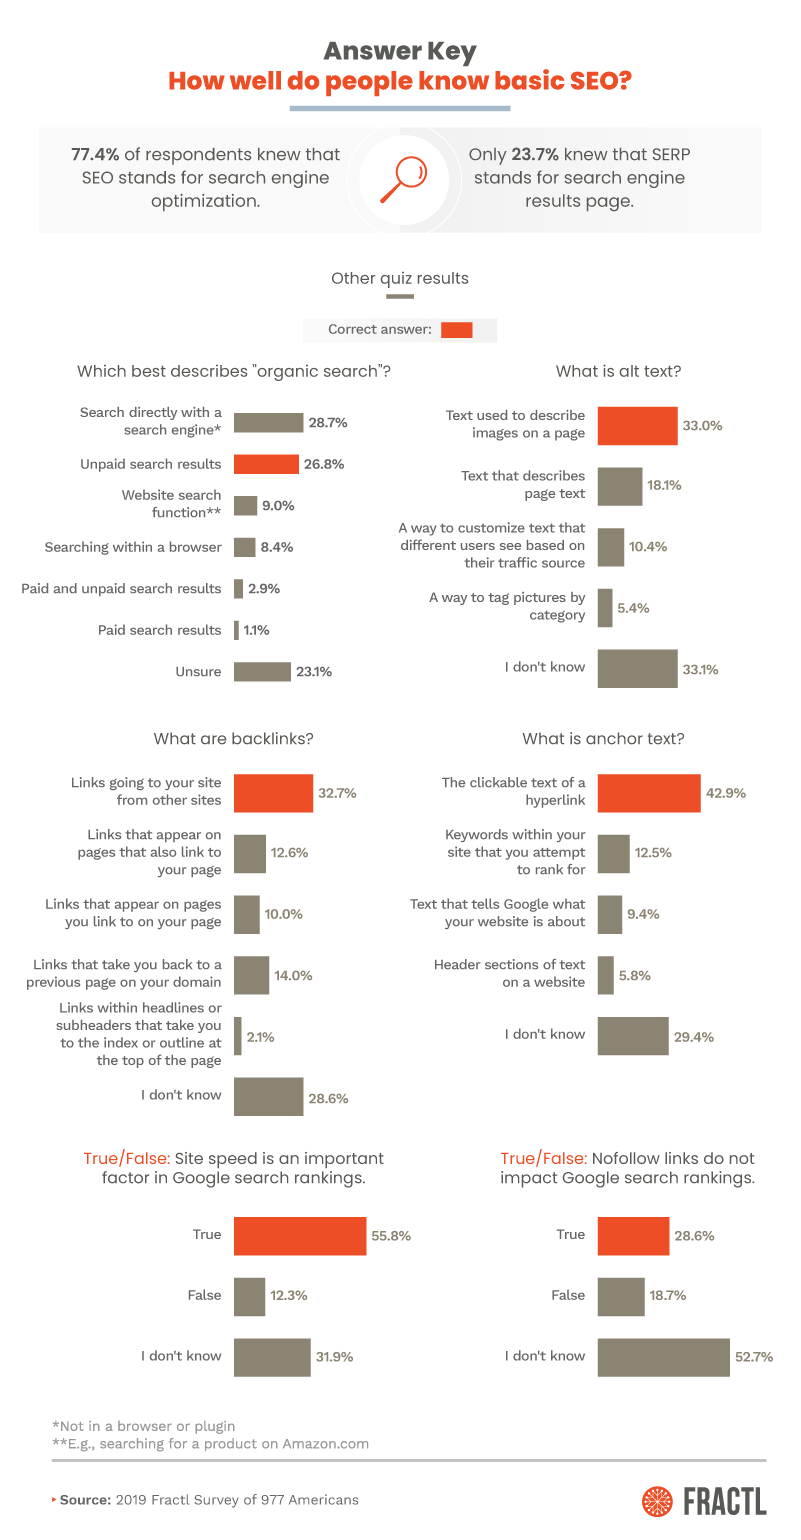 How well do people know basic SEO information? [graph]